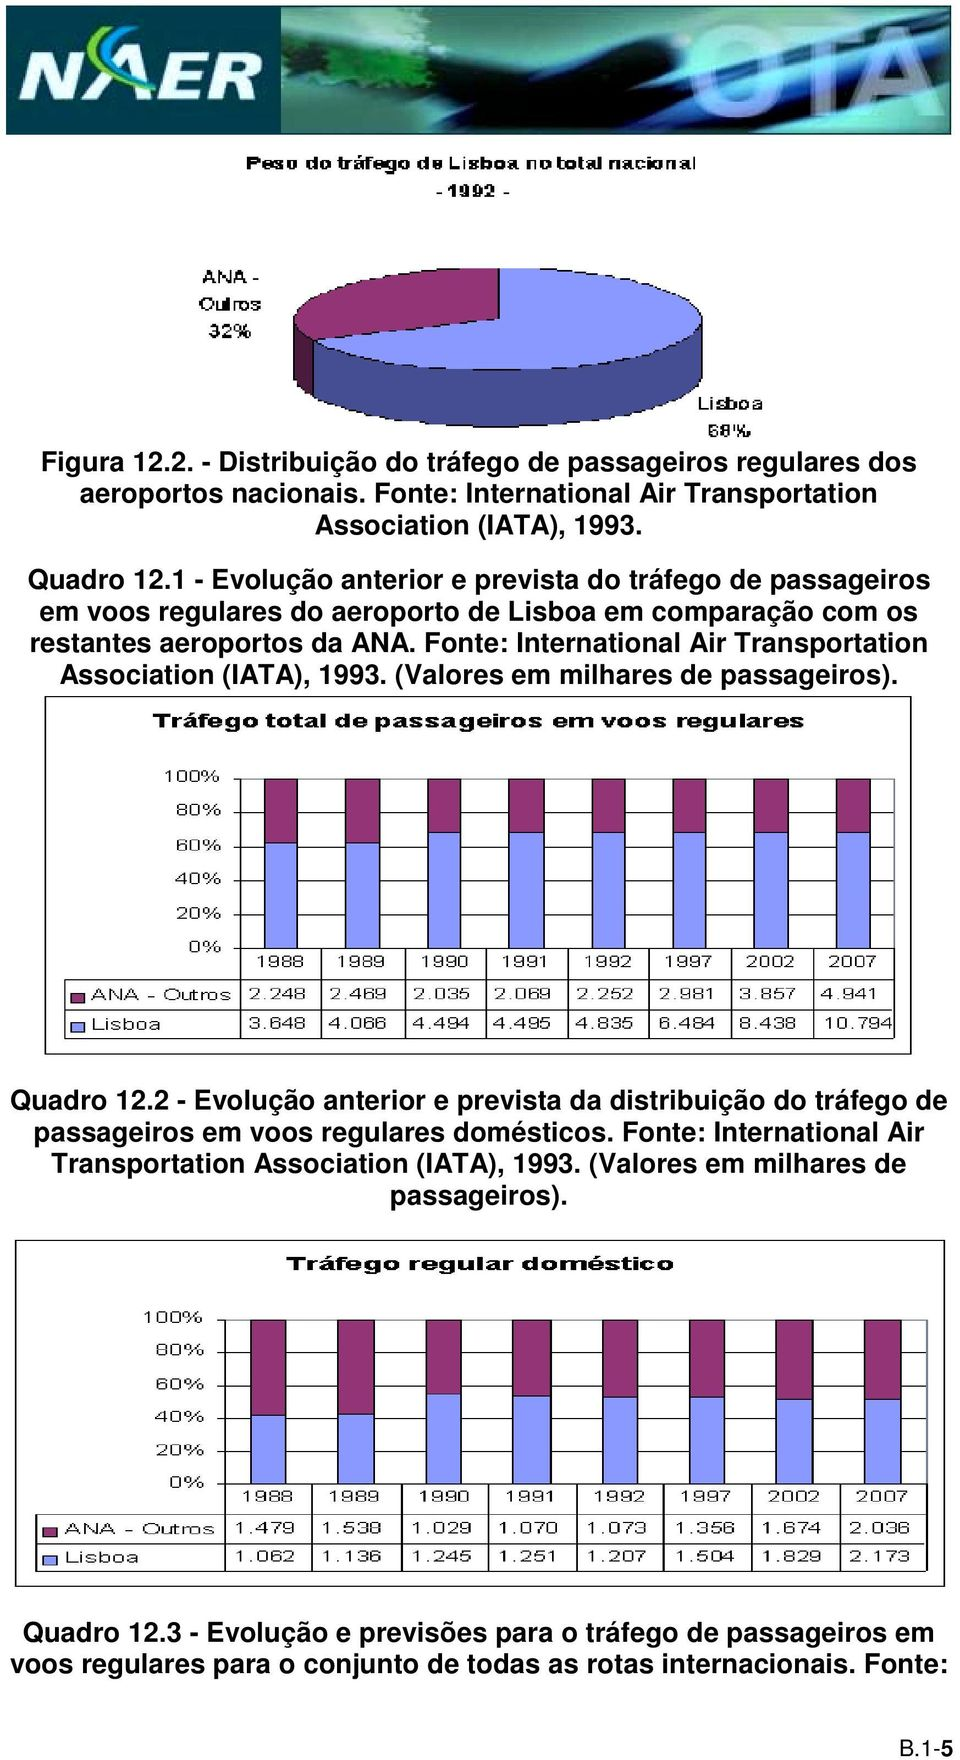 Fonte: International Air Transportation Association (IATA), 1993. (Valores em milhares de passageiros). Quadro 12.